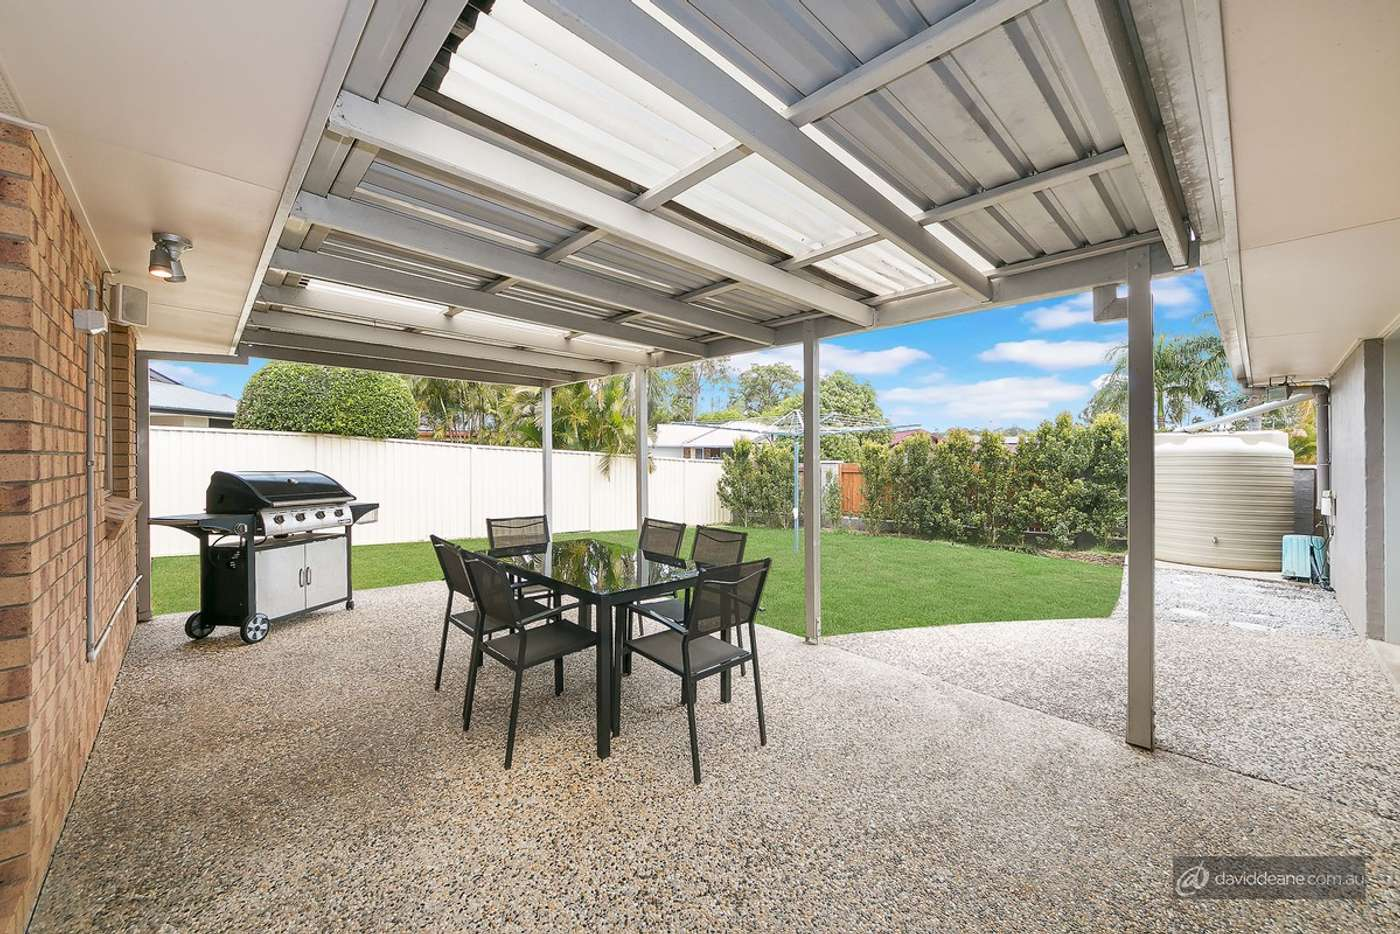 Seventh view of Homely house listing, 7 Lambourne Court, Lawnton QLD 4501